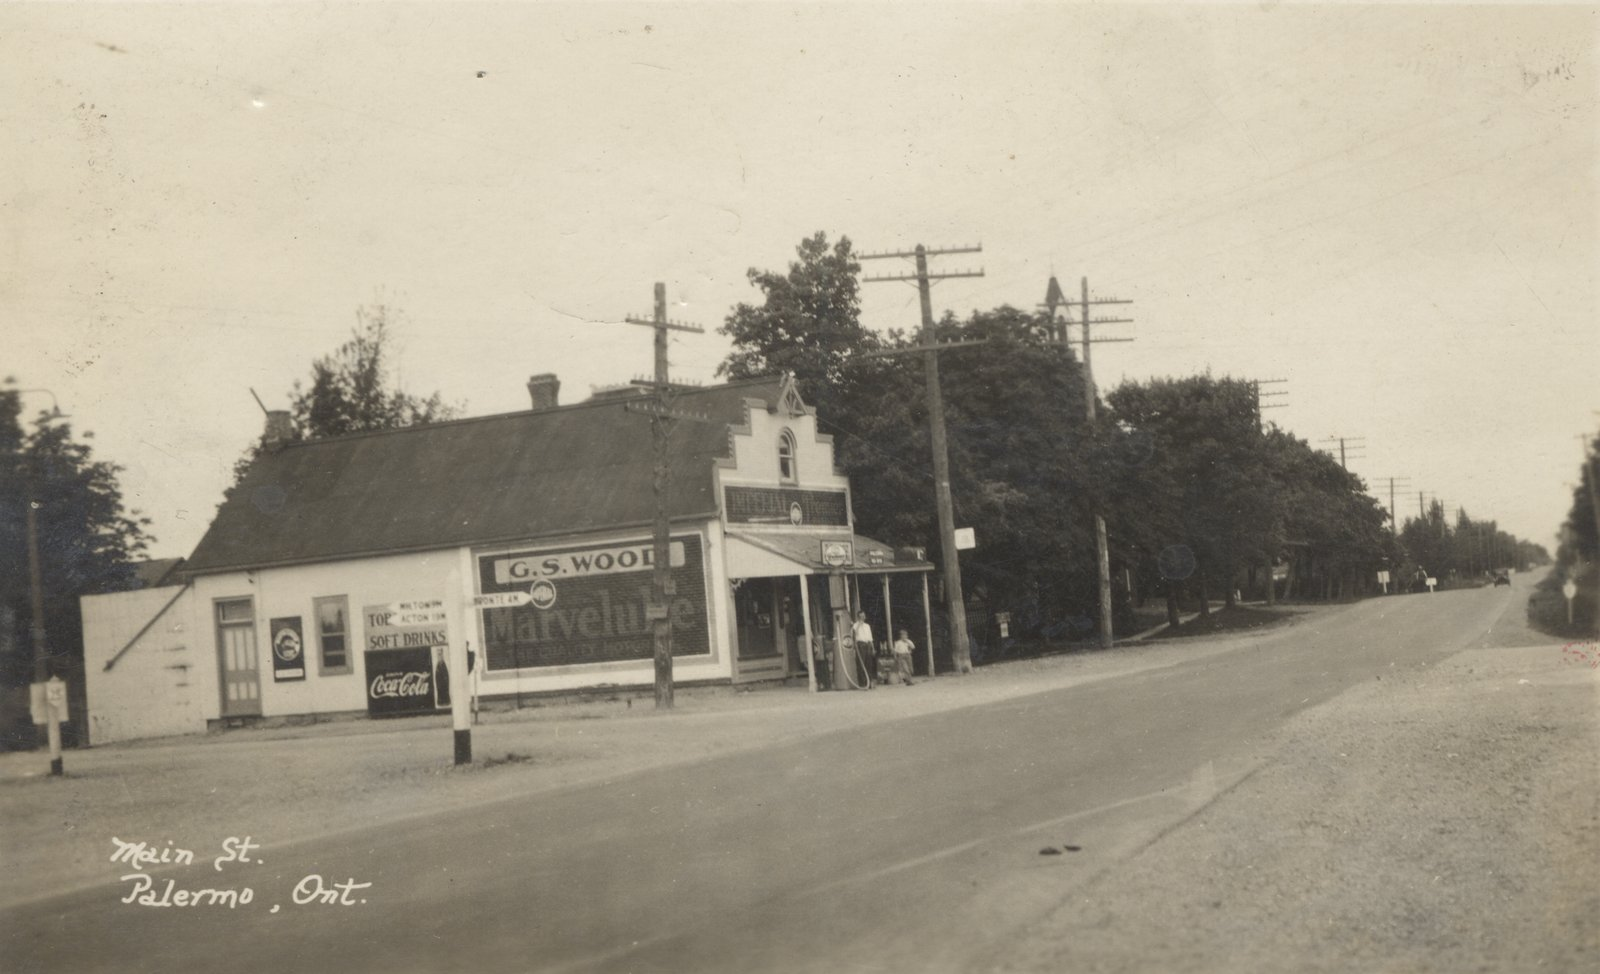 Palermo postcard.  (Main St, Palermo Ont.)